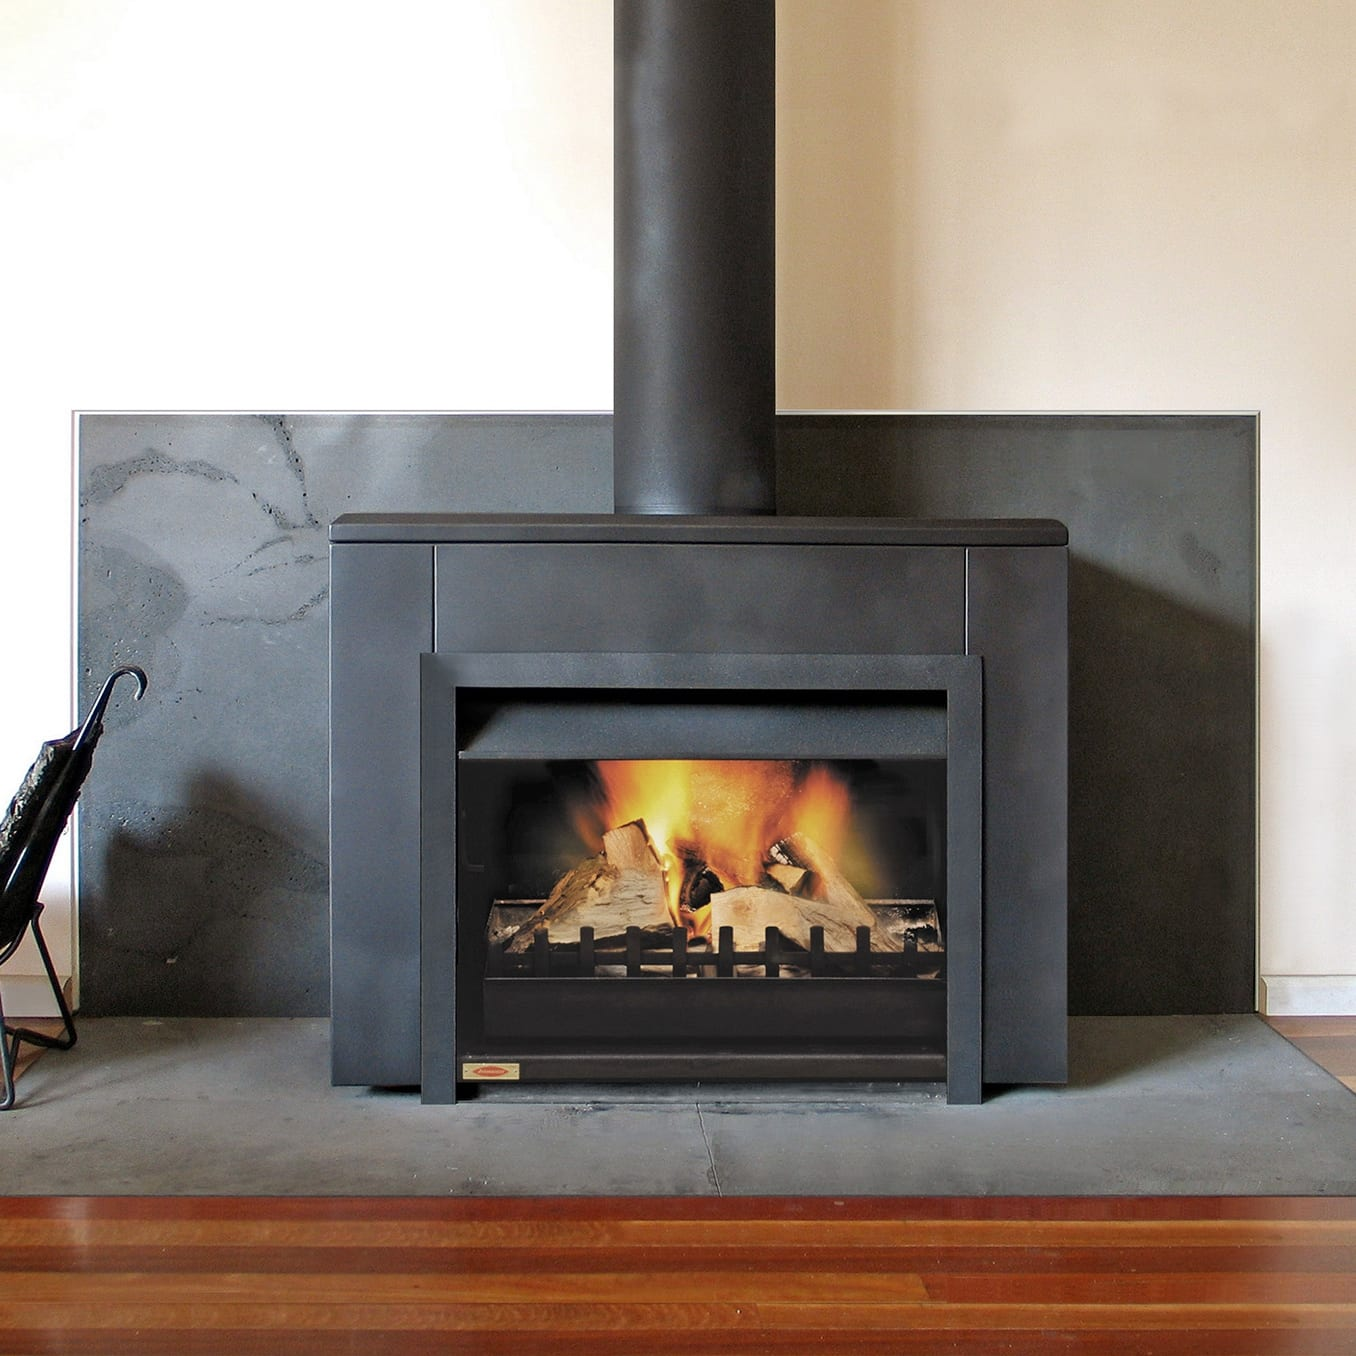 Jetmaster 700d Freestanding Wood Fire Package Turfrey Plumbing Gasfitting Roofing Heating Drainage